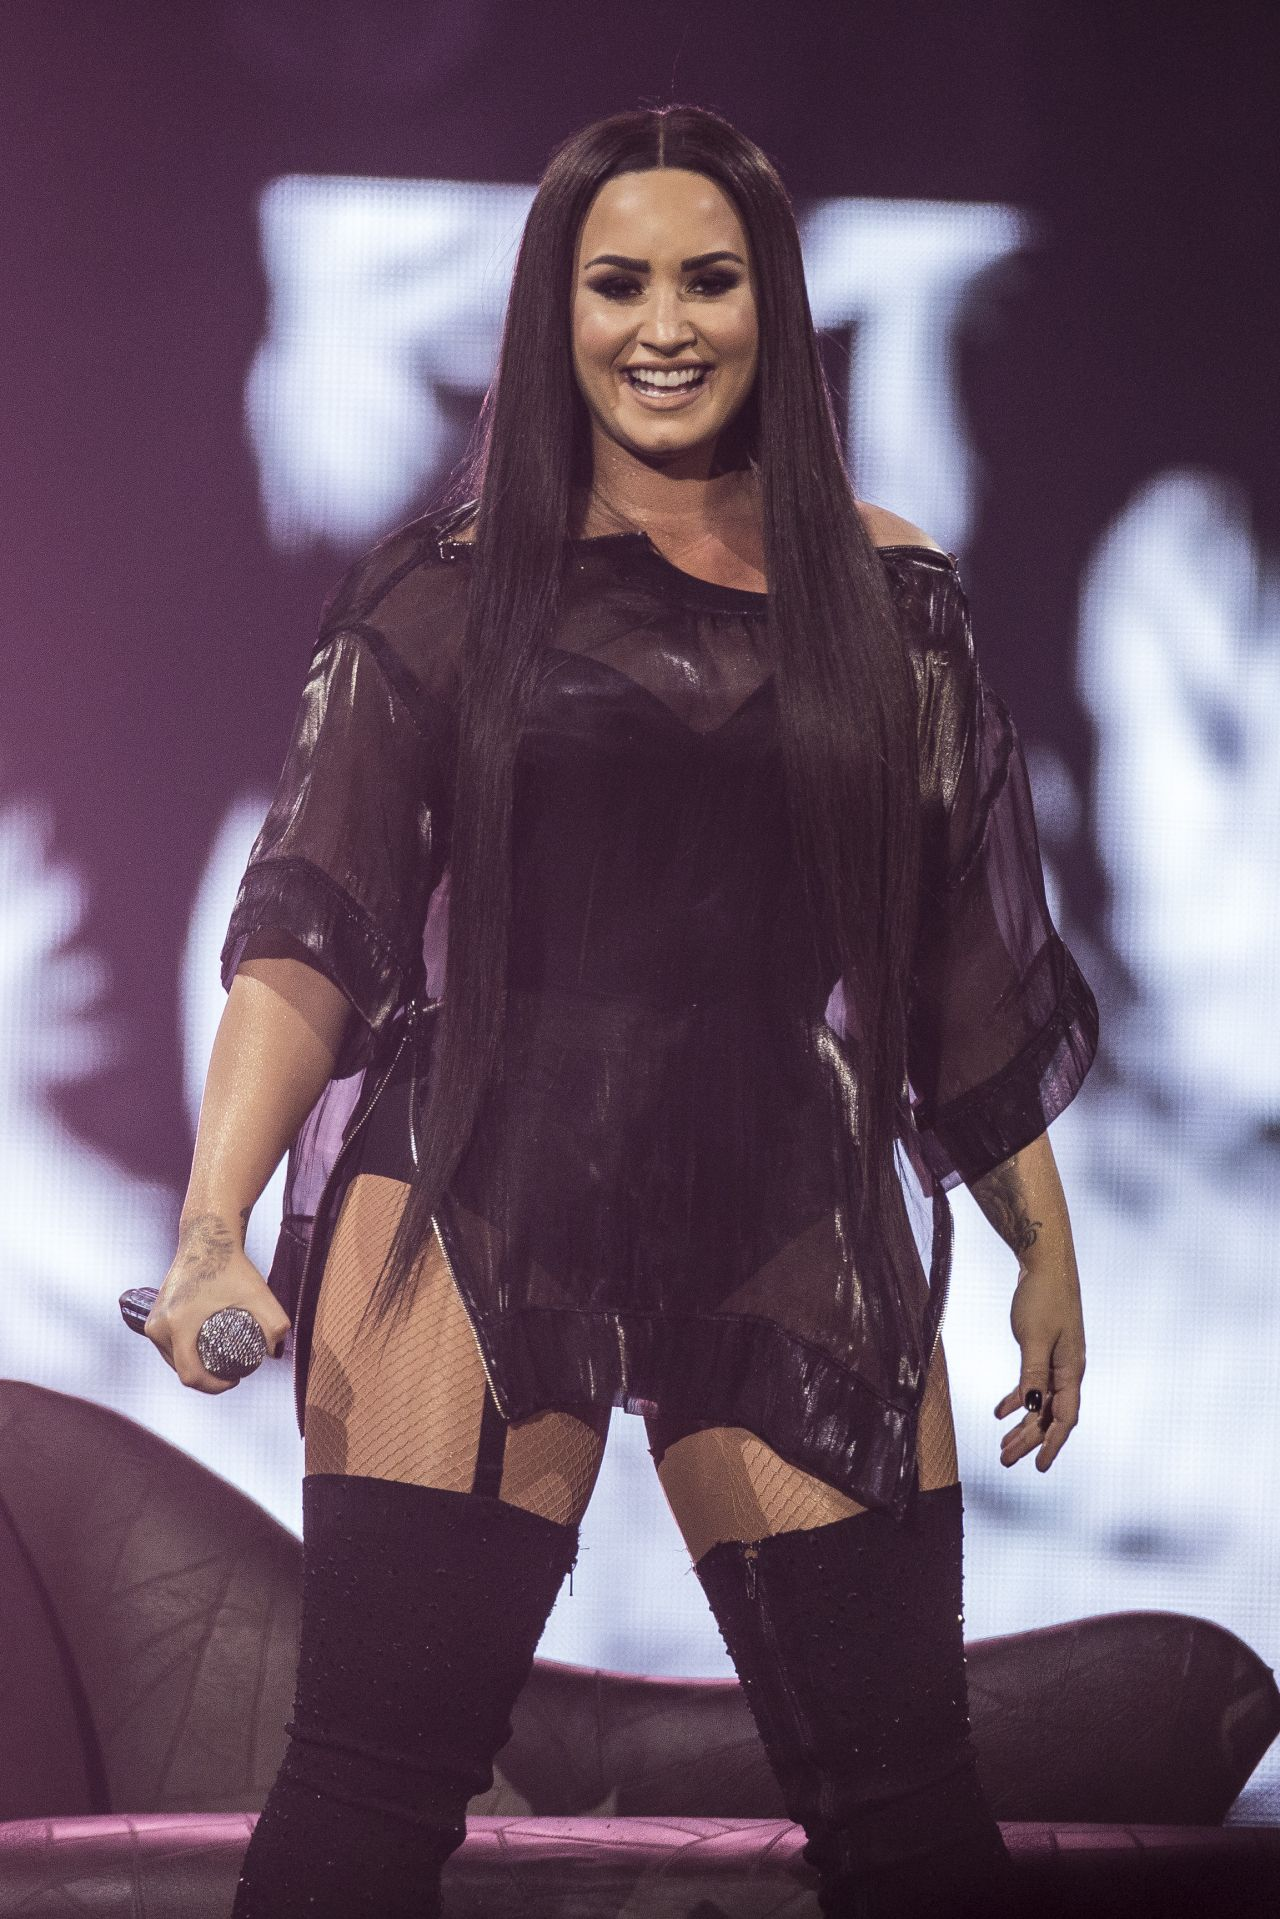 Demi Lovato Performing Live Concert London Lexee Smith Personal Pics